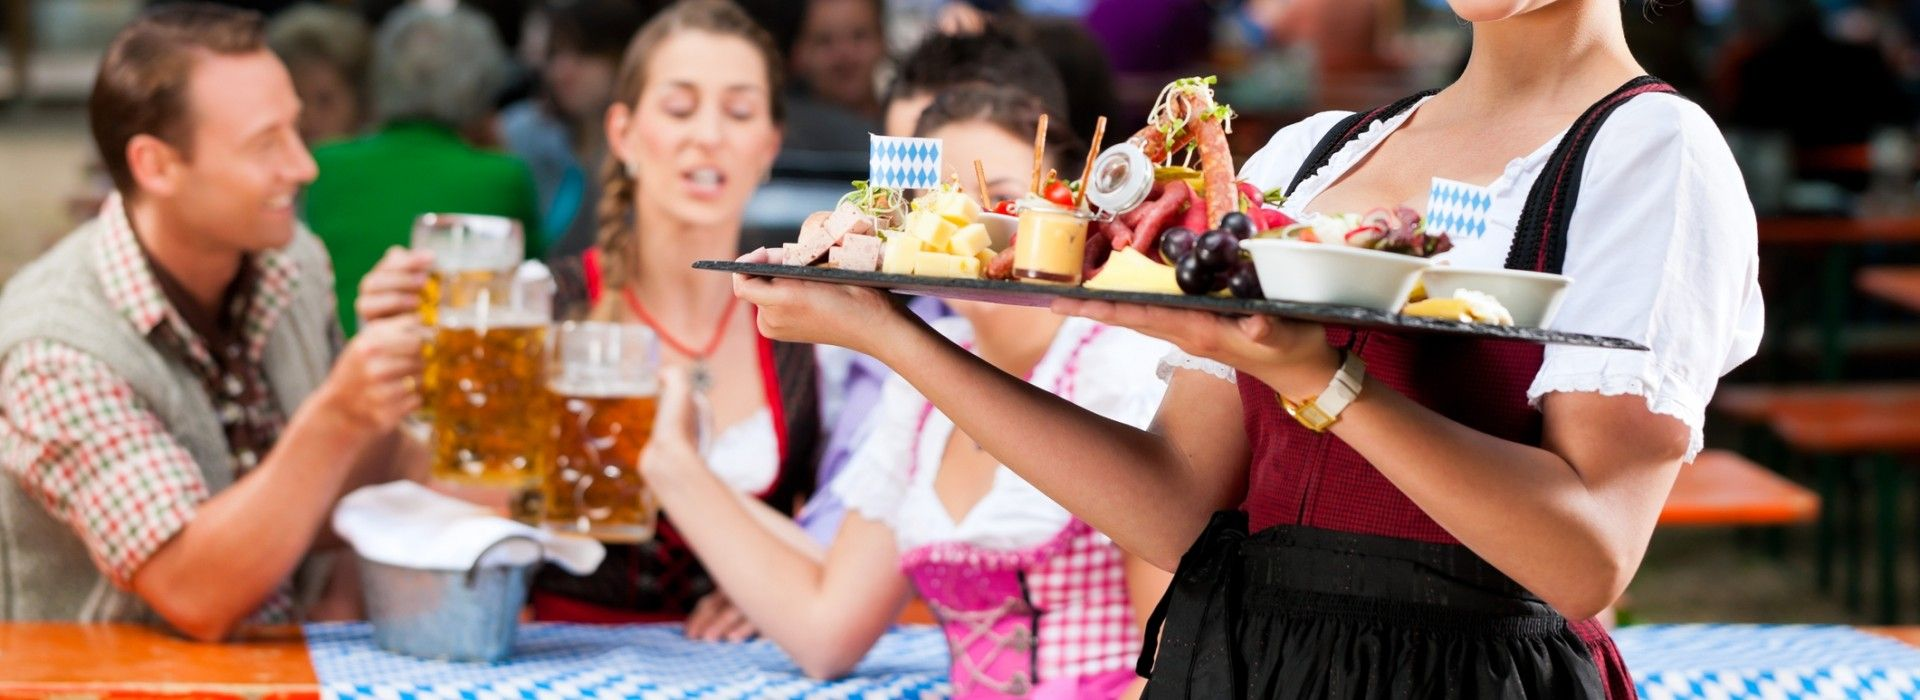 Oktoberfest is a time to indulge in some of Germany's best cuisines.